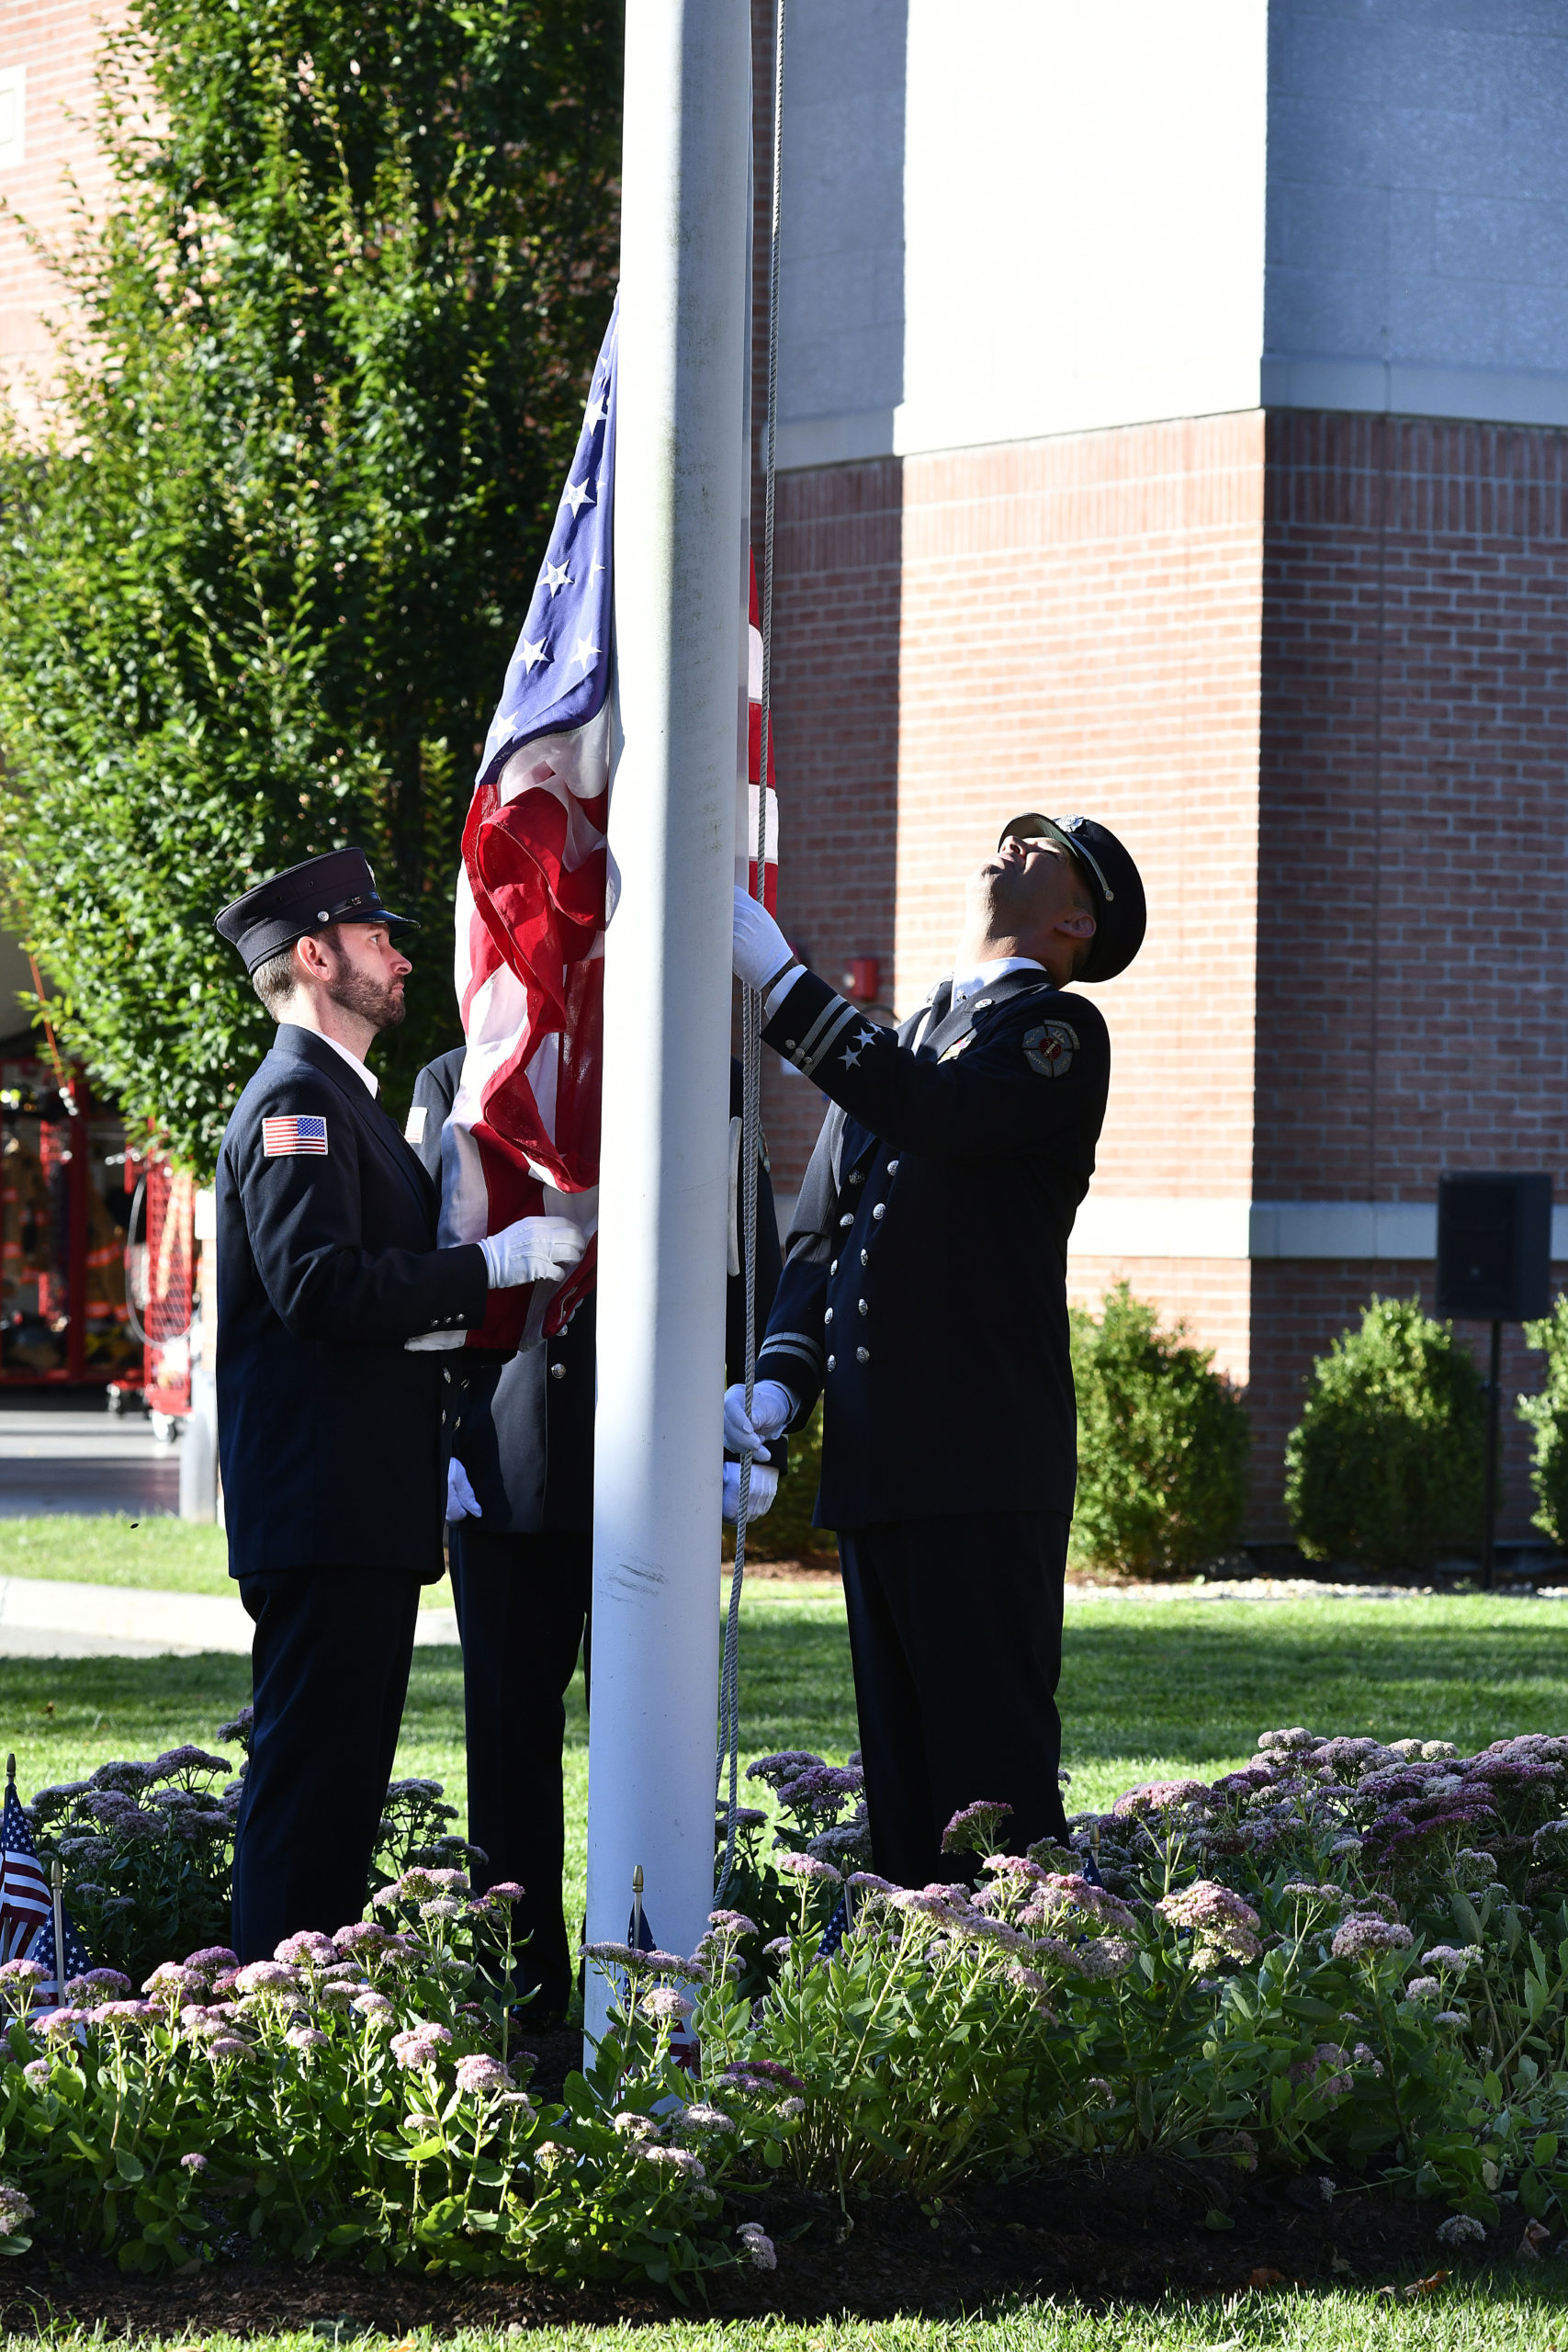 The Color Guard presents and raises the flag at the Southampton Fire Department ceremony on Saturday.